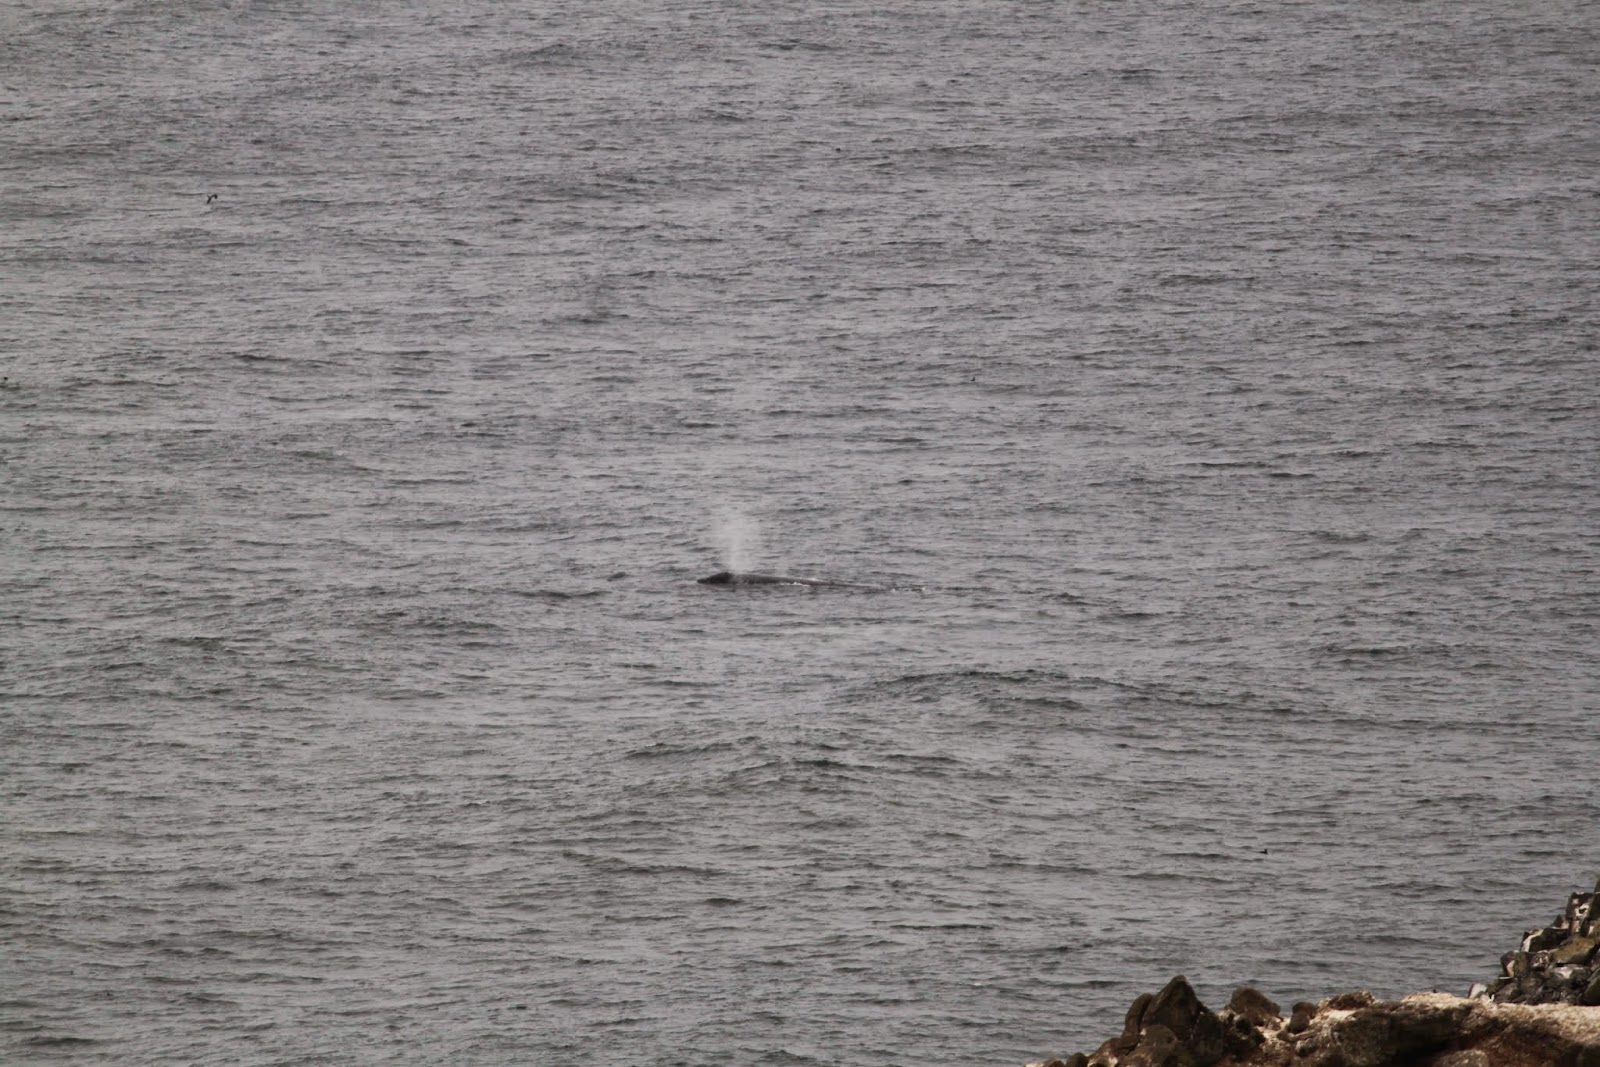 whale in the bay at Heceta Head